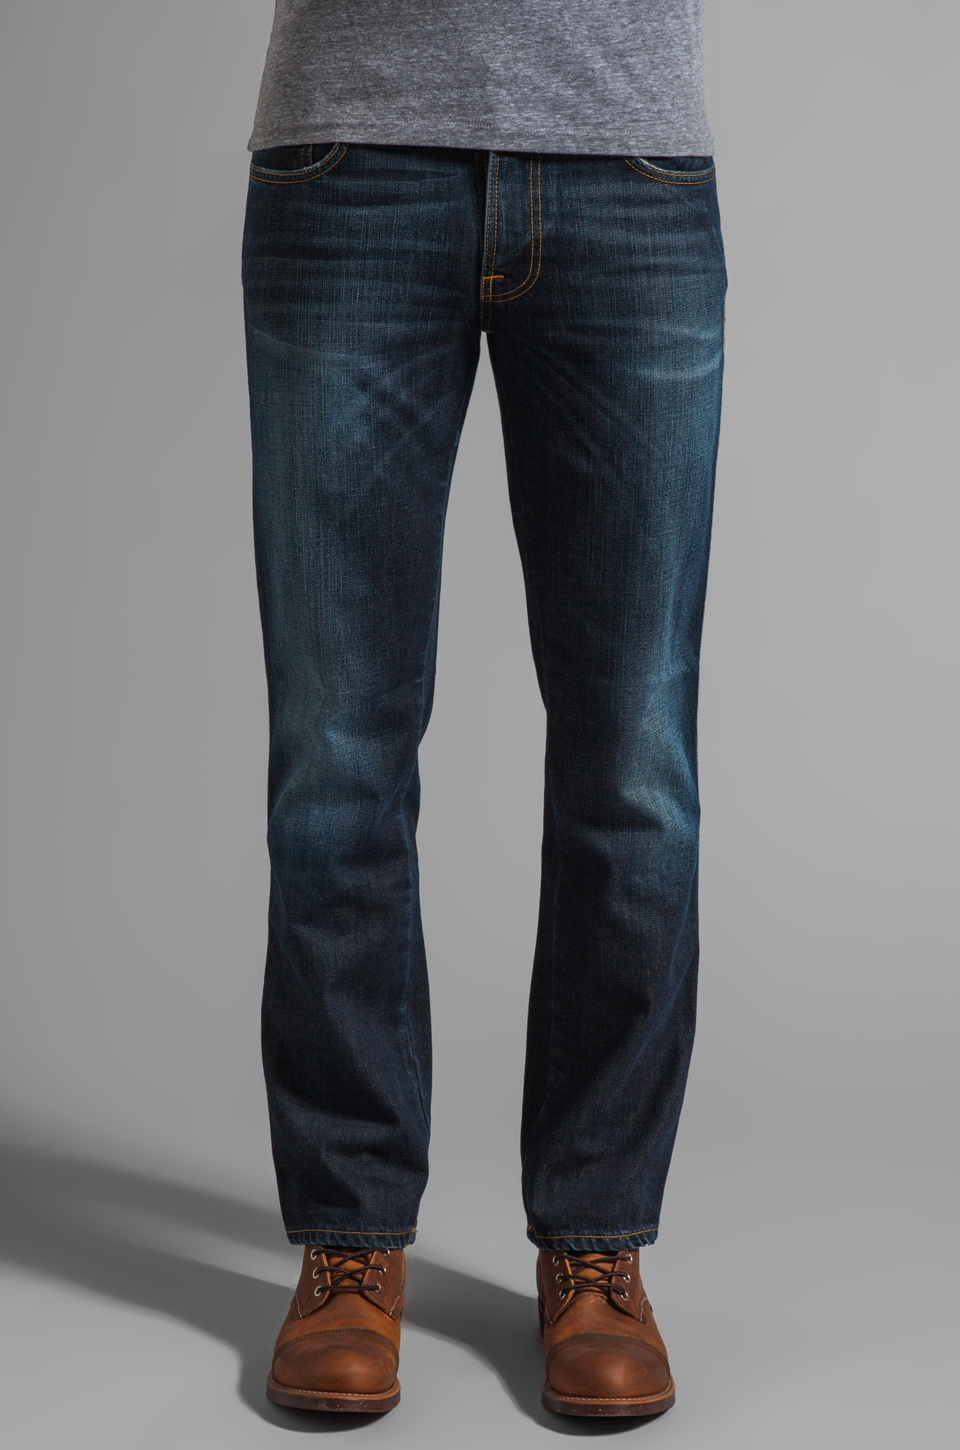 Nudie Jeans Slim Jim in Org. Slubby Rain